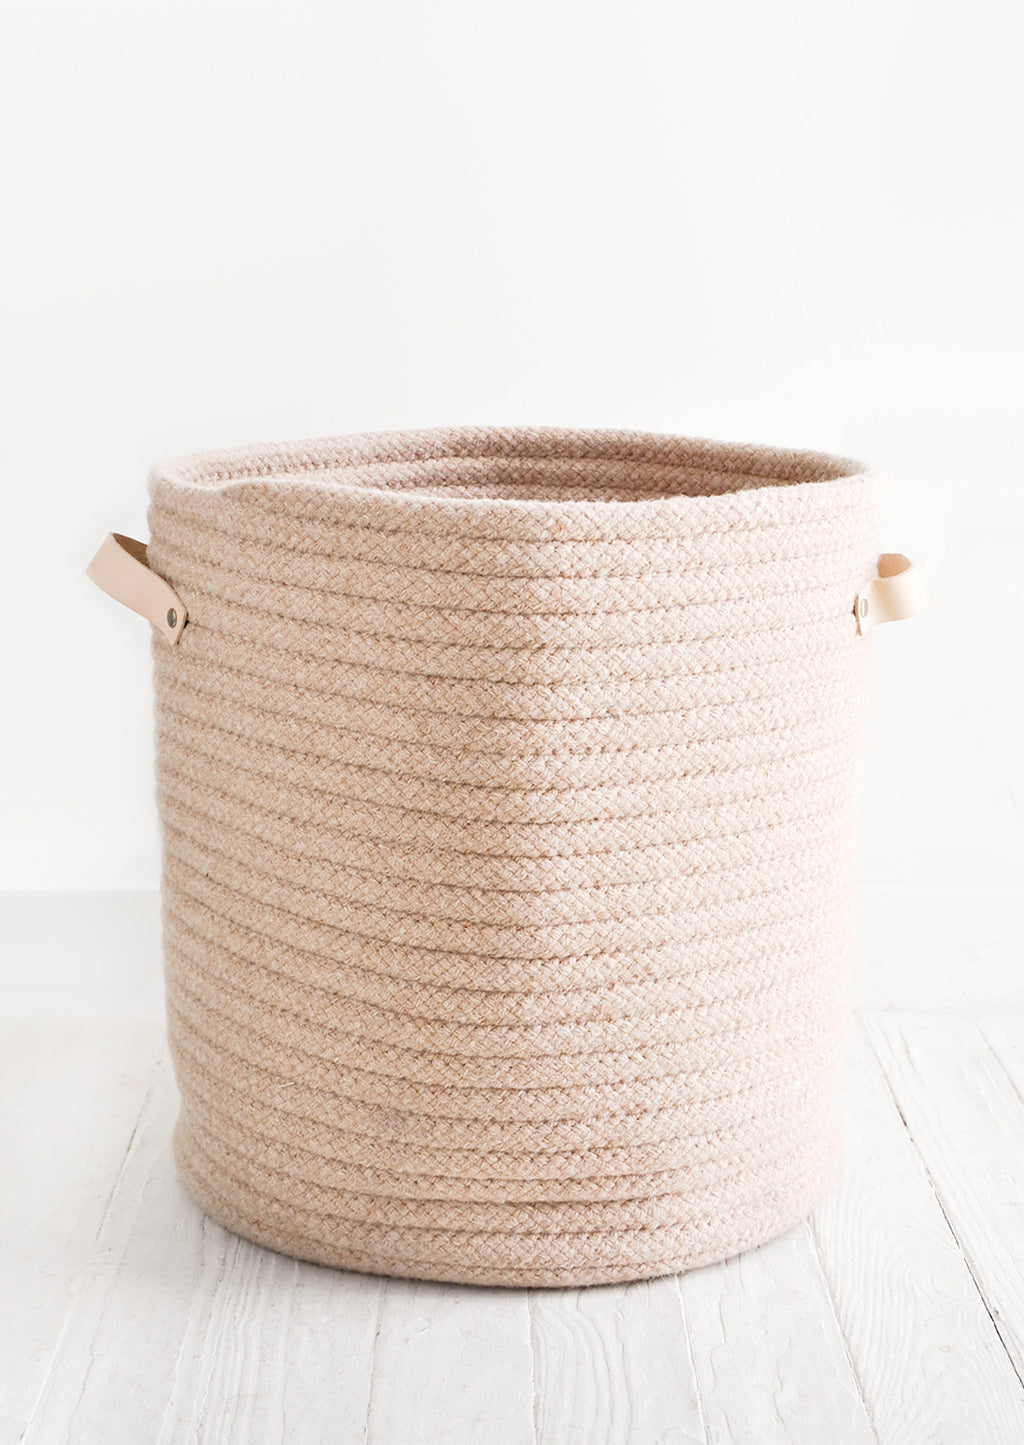 Wooly Storage Bin with Leather in Large / Nude - LEIF